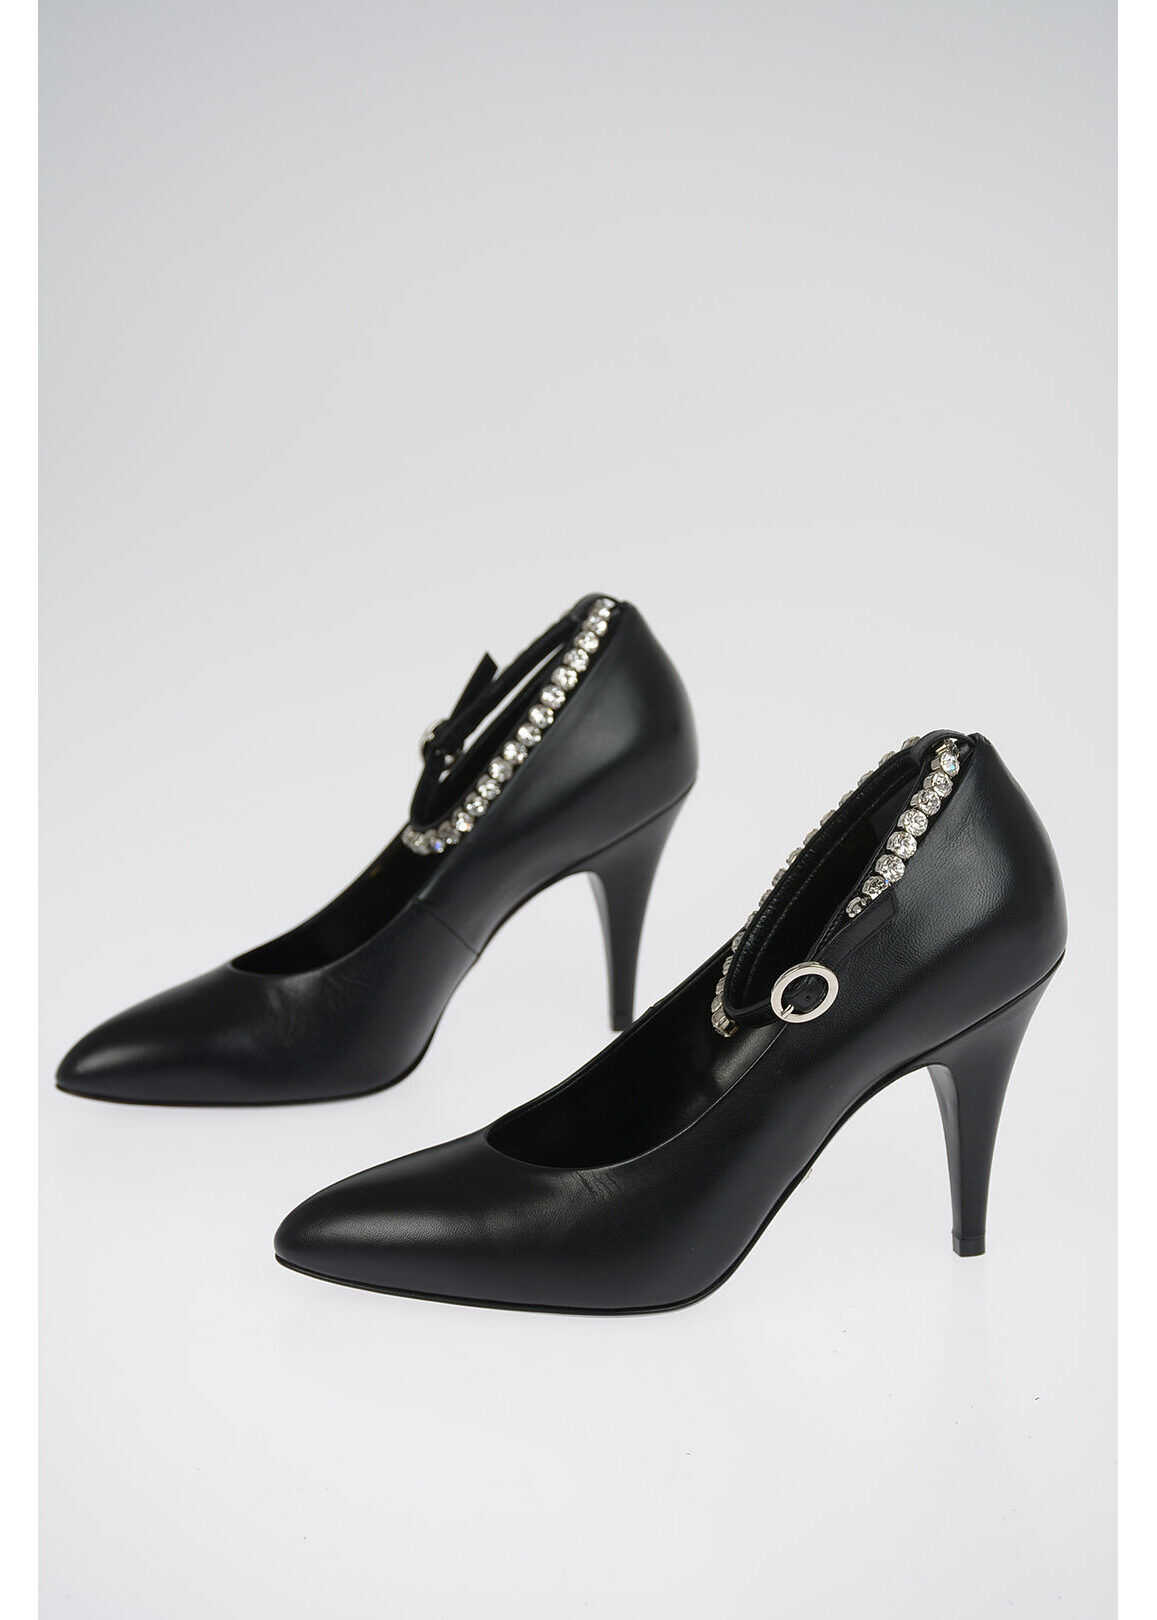 Gucci Leather Pumps with Jewel Ankle Strap 10 cm BLACK imagine b-mall.ro